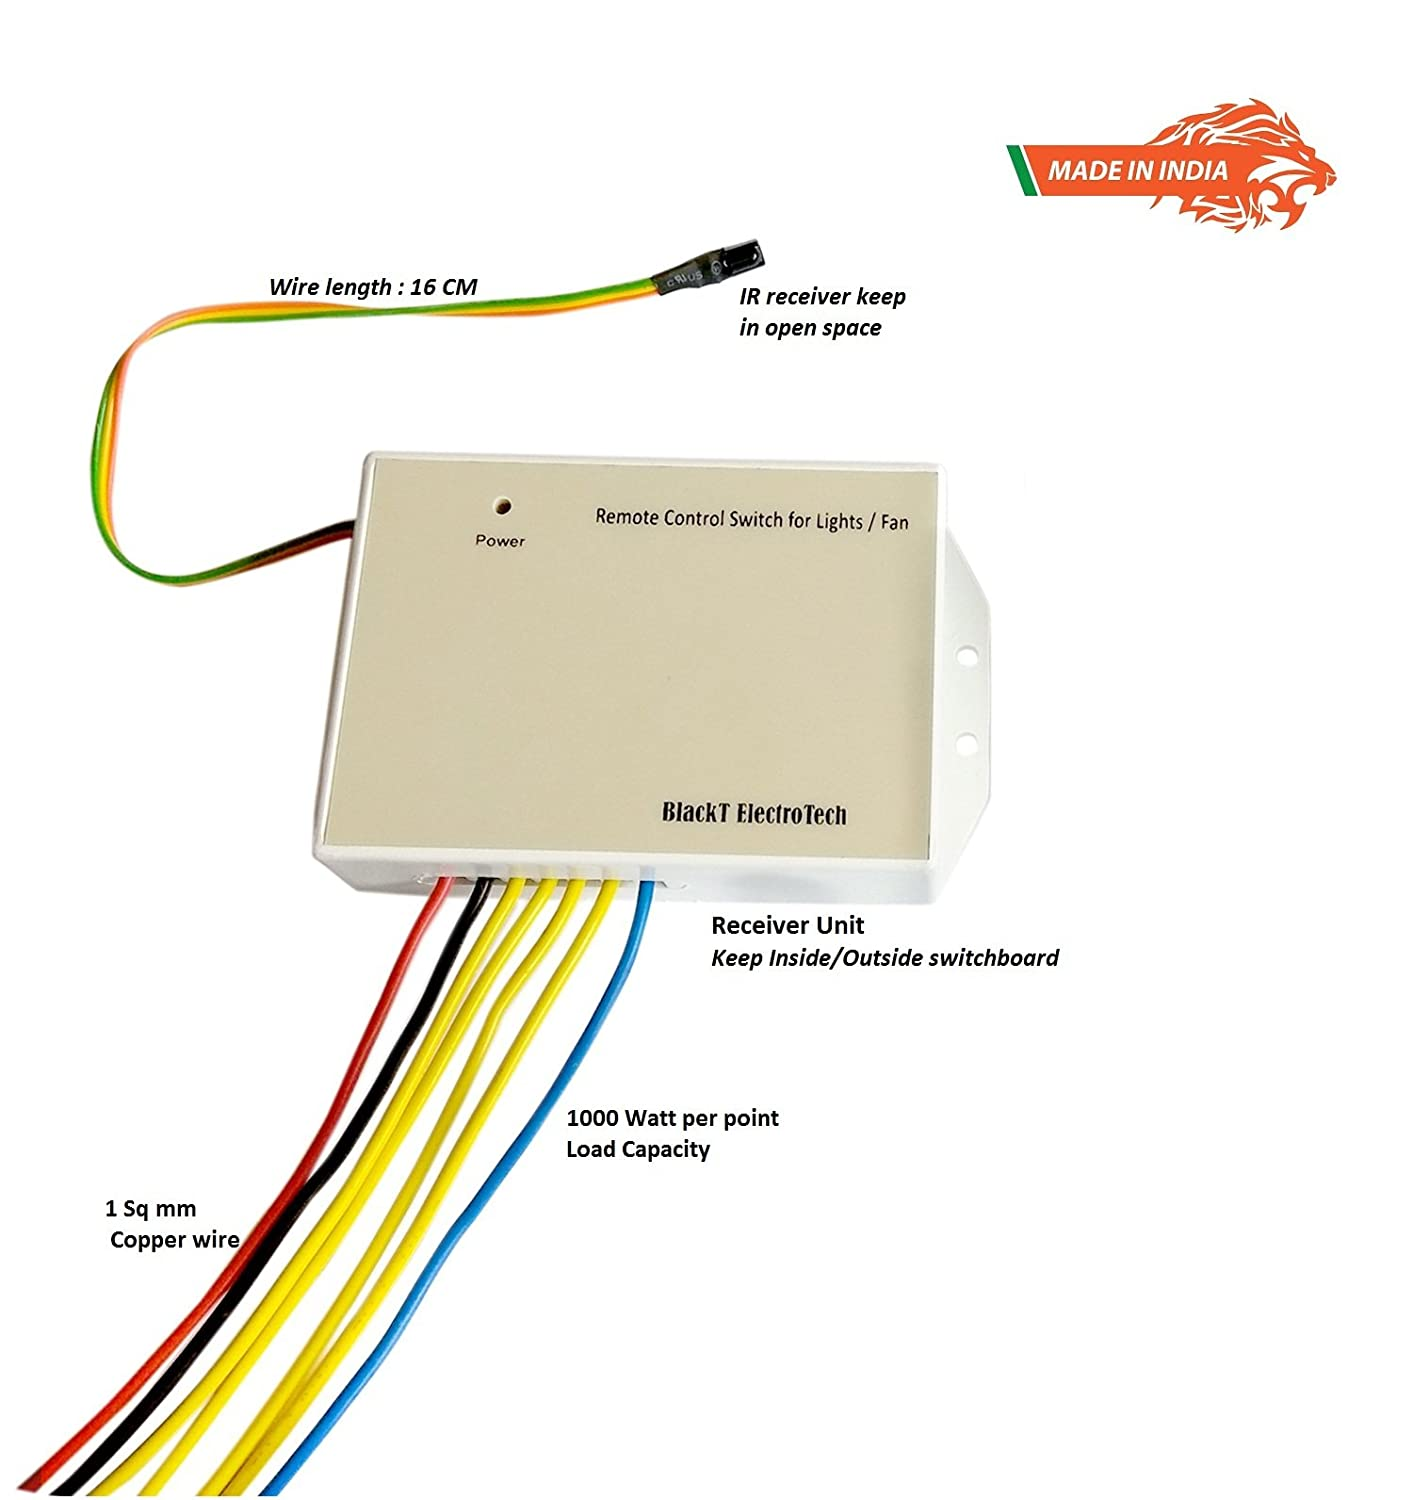 Blackt Electrotech Bt 20dd Wireless Remote Control Switch System Wiring Diagram With Speed Regulation For 4 Lights And 1 Fan White Copper Home Improvement